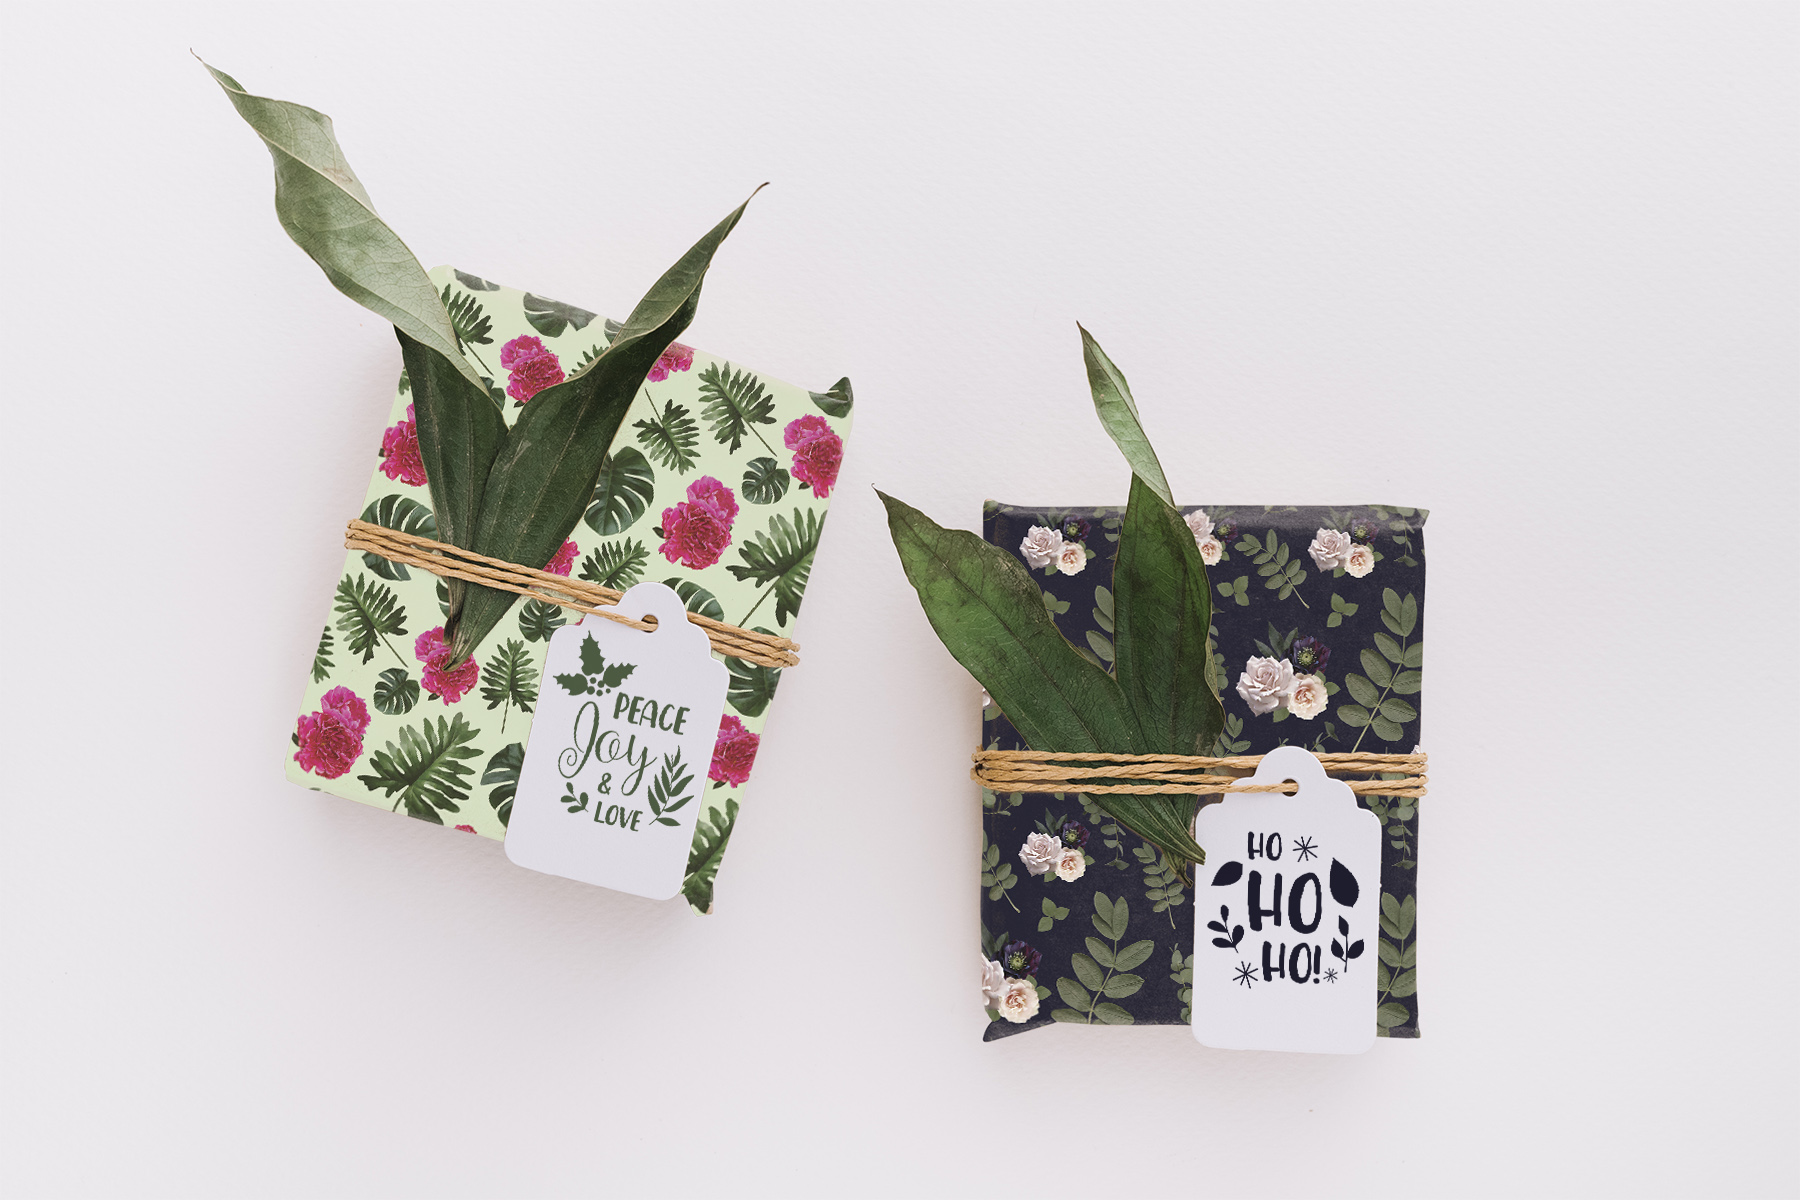 Pressed Florals gift wrapping